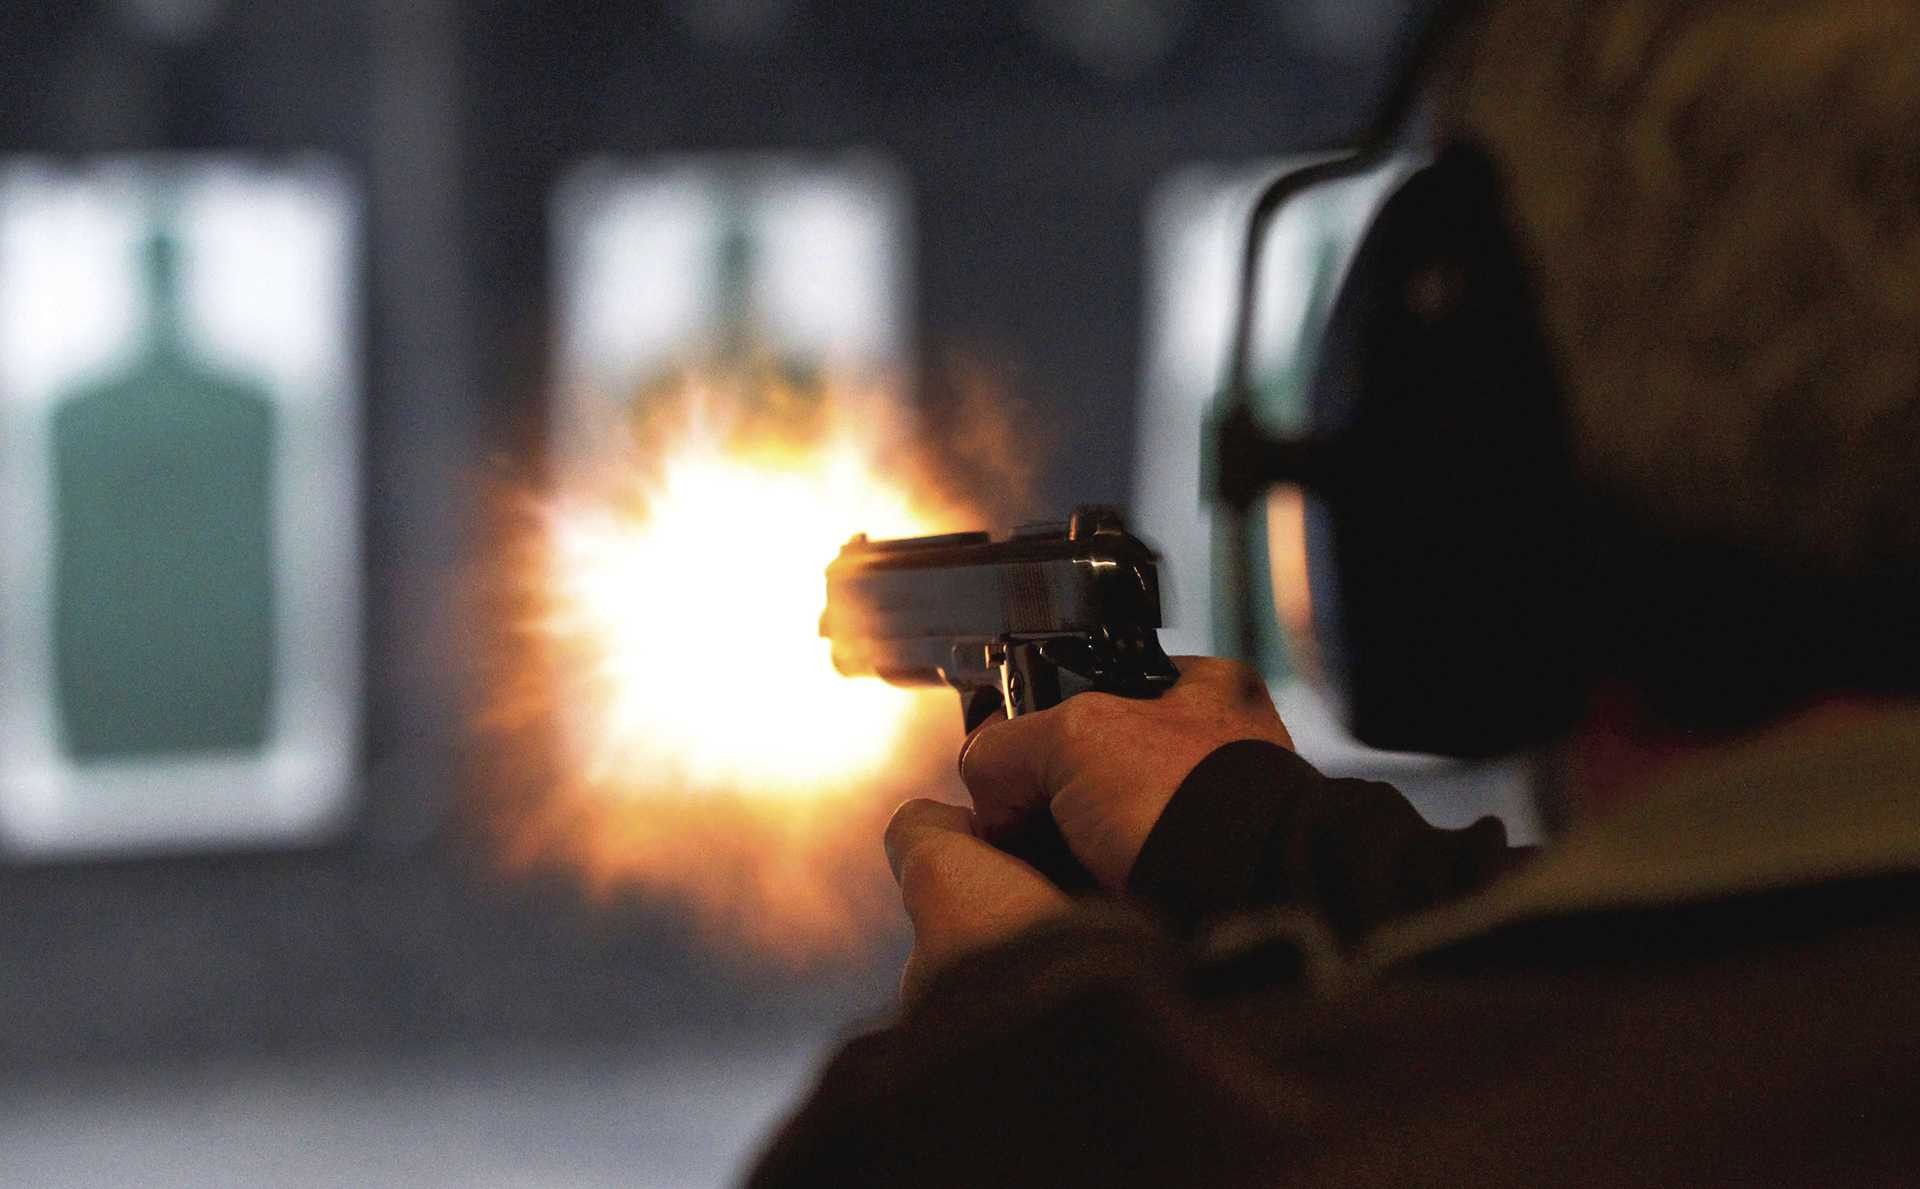 Ernie Vandergriff fires at a target during a class for a concealed handgun license at The Shooting Gallery in Fort Worth, Texas, January 17, 2013. (Ron Jenkins/Fort Worth Star-Telegram/MCT)